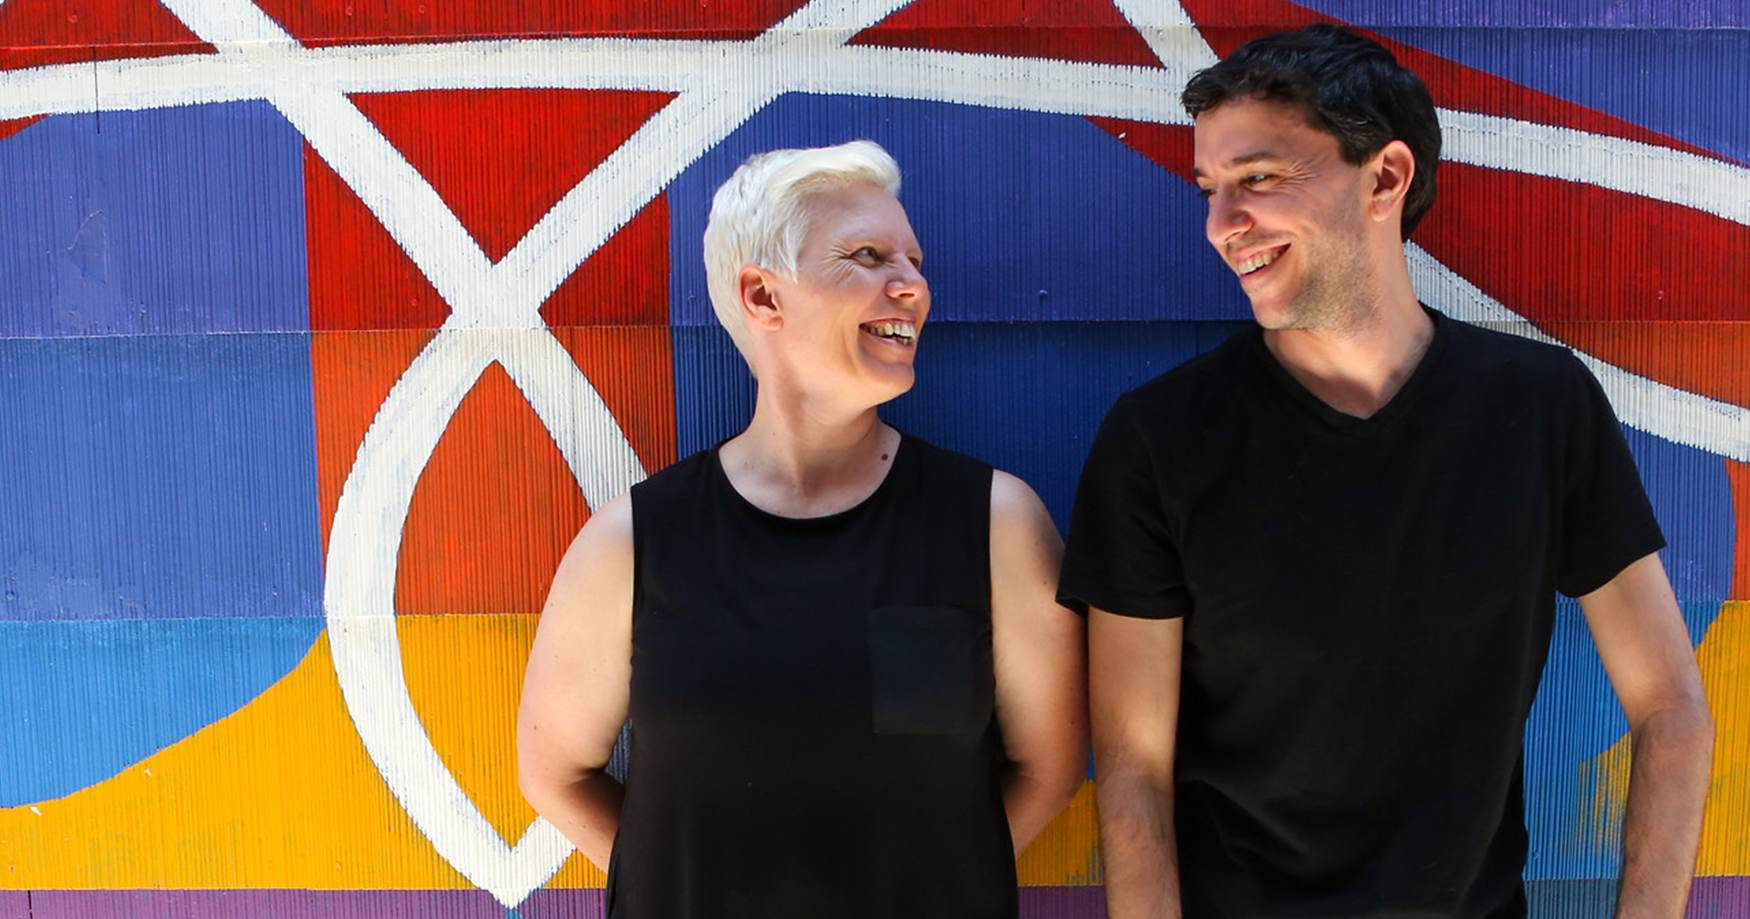 Zara Lawler and Paul Fadoul against a colorful background